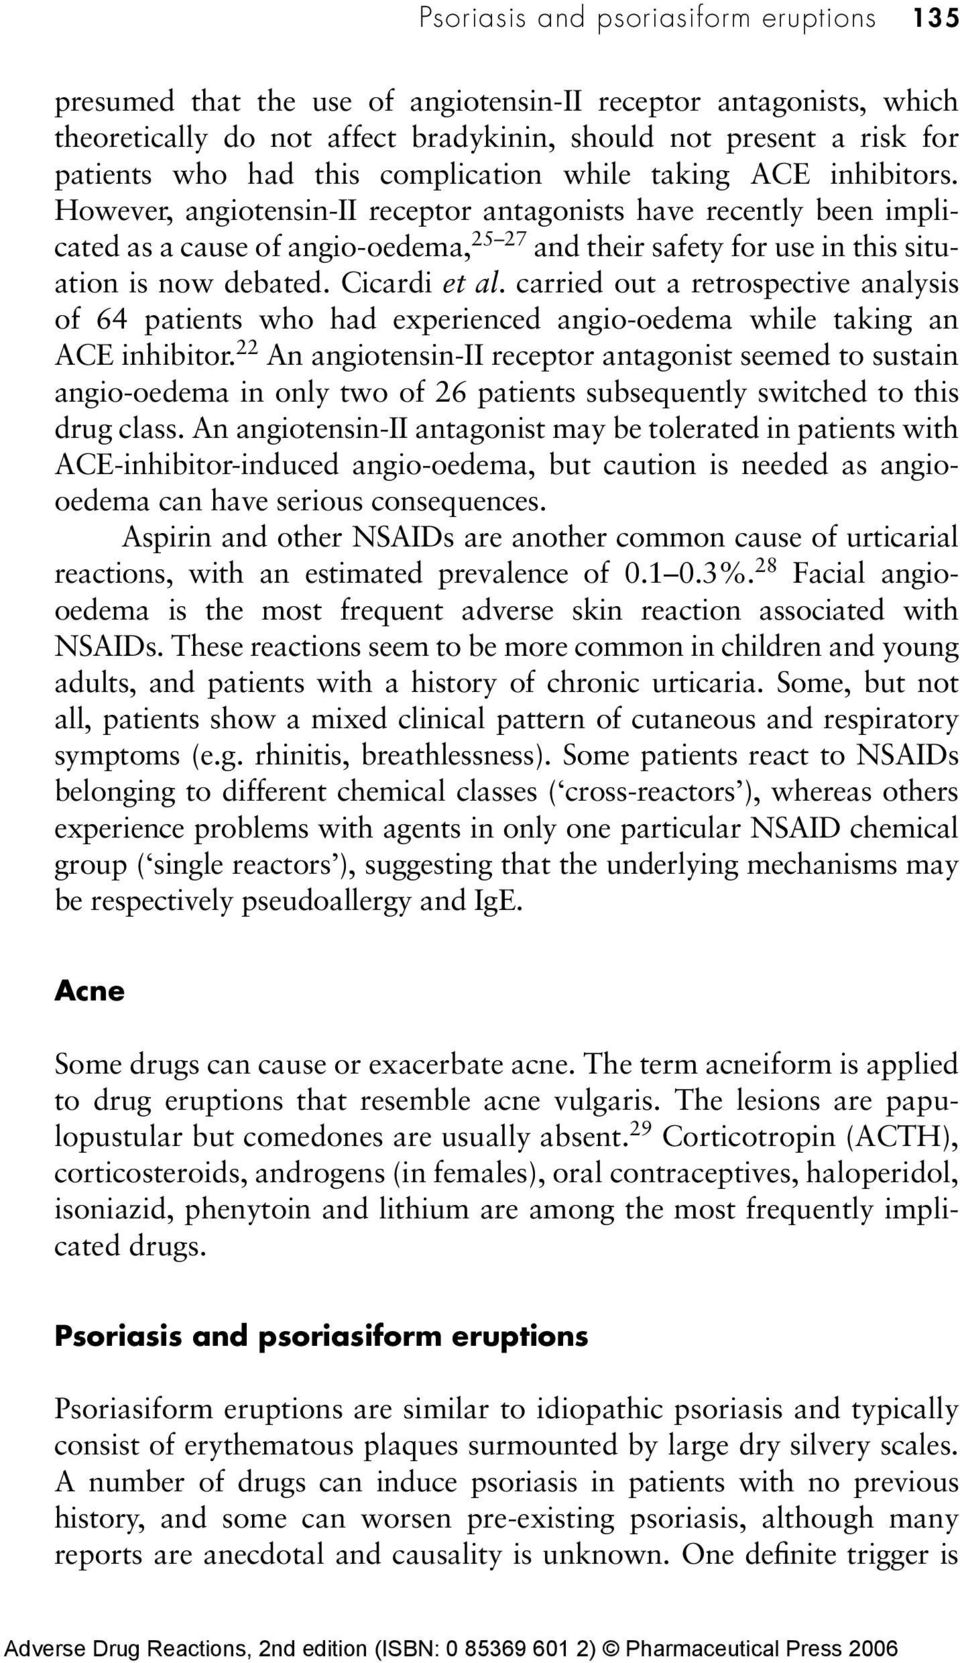 However, angiotensin-ii receptor antagonists have recently been implicated as a cause of angio-oedema, 25 27 and their safety for use in this situation is now debated. Cicardi et al.